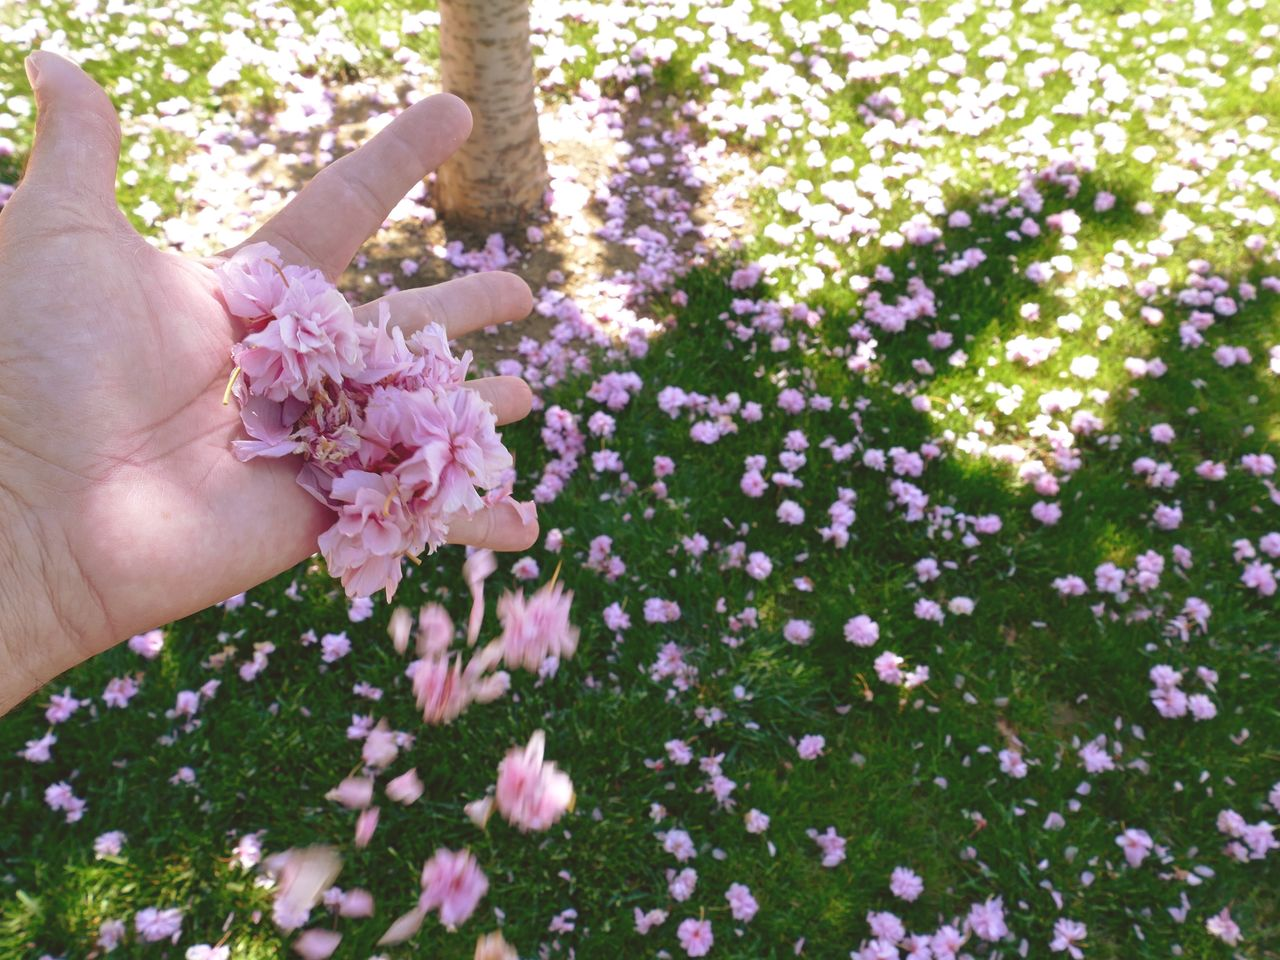 Cropped Image Of Hand Holding Falling Flowers At Park